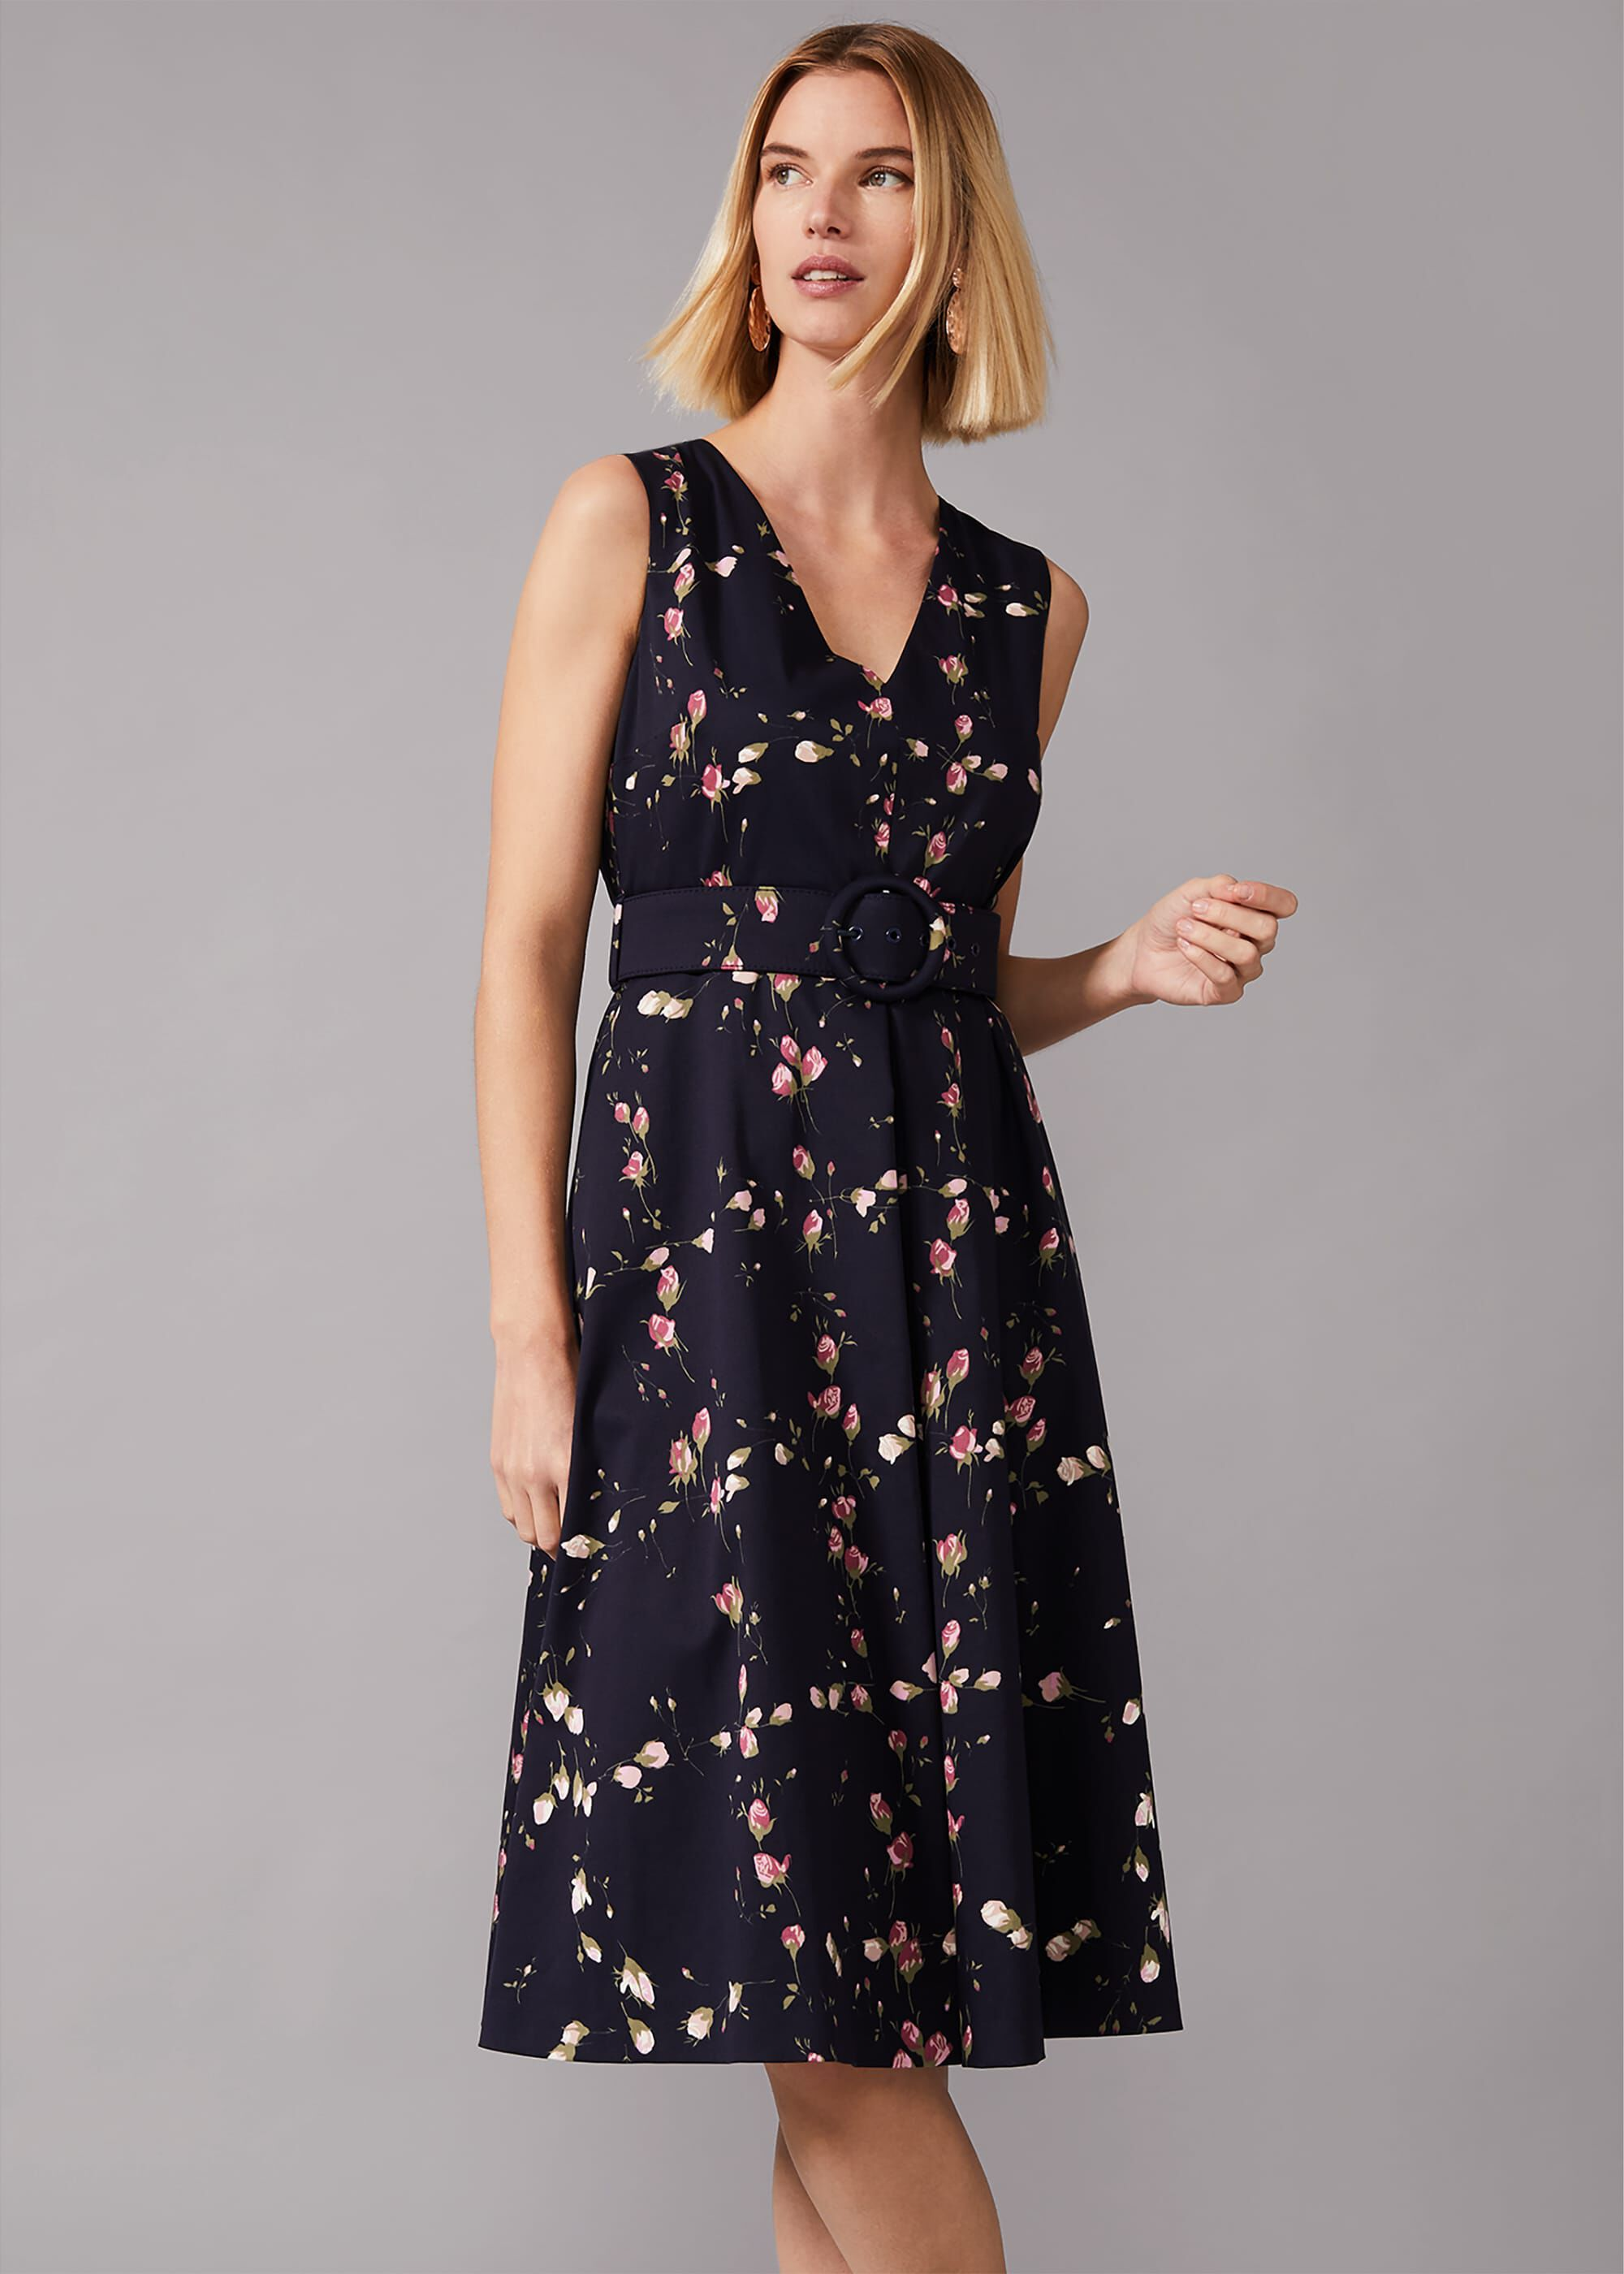 Phase Eight Nala Floral Fit And Flare Dress, Blue, Fit & Flare, Occasion Dress